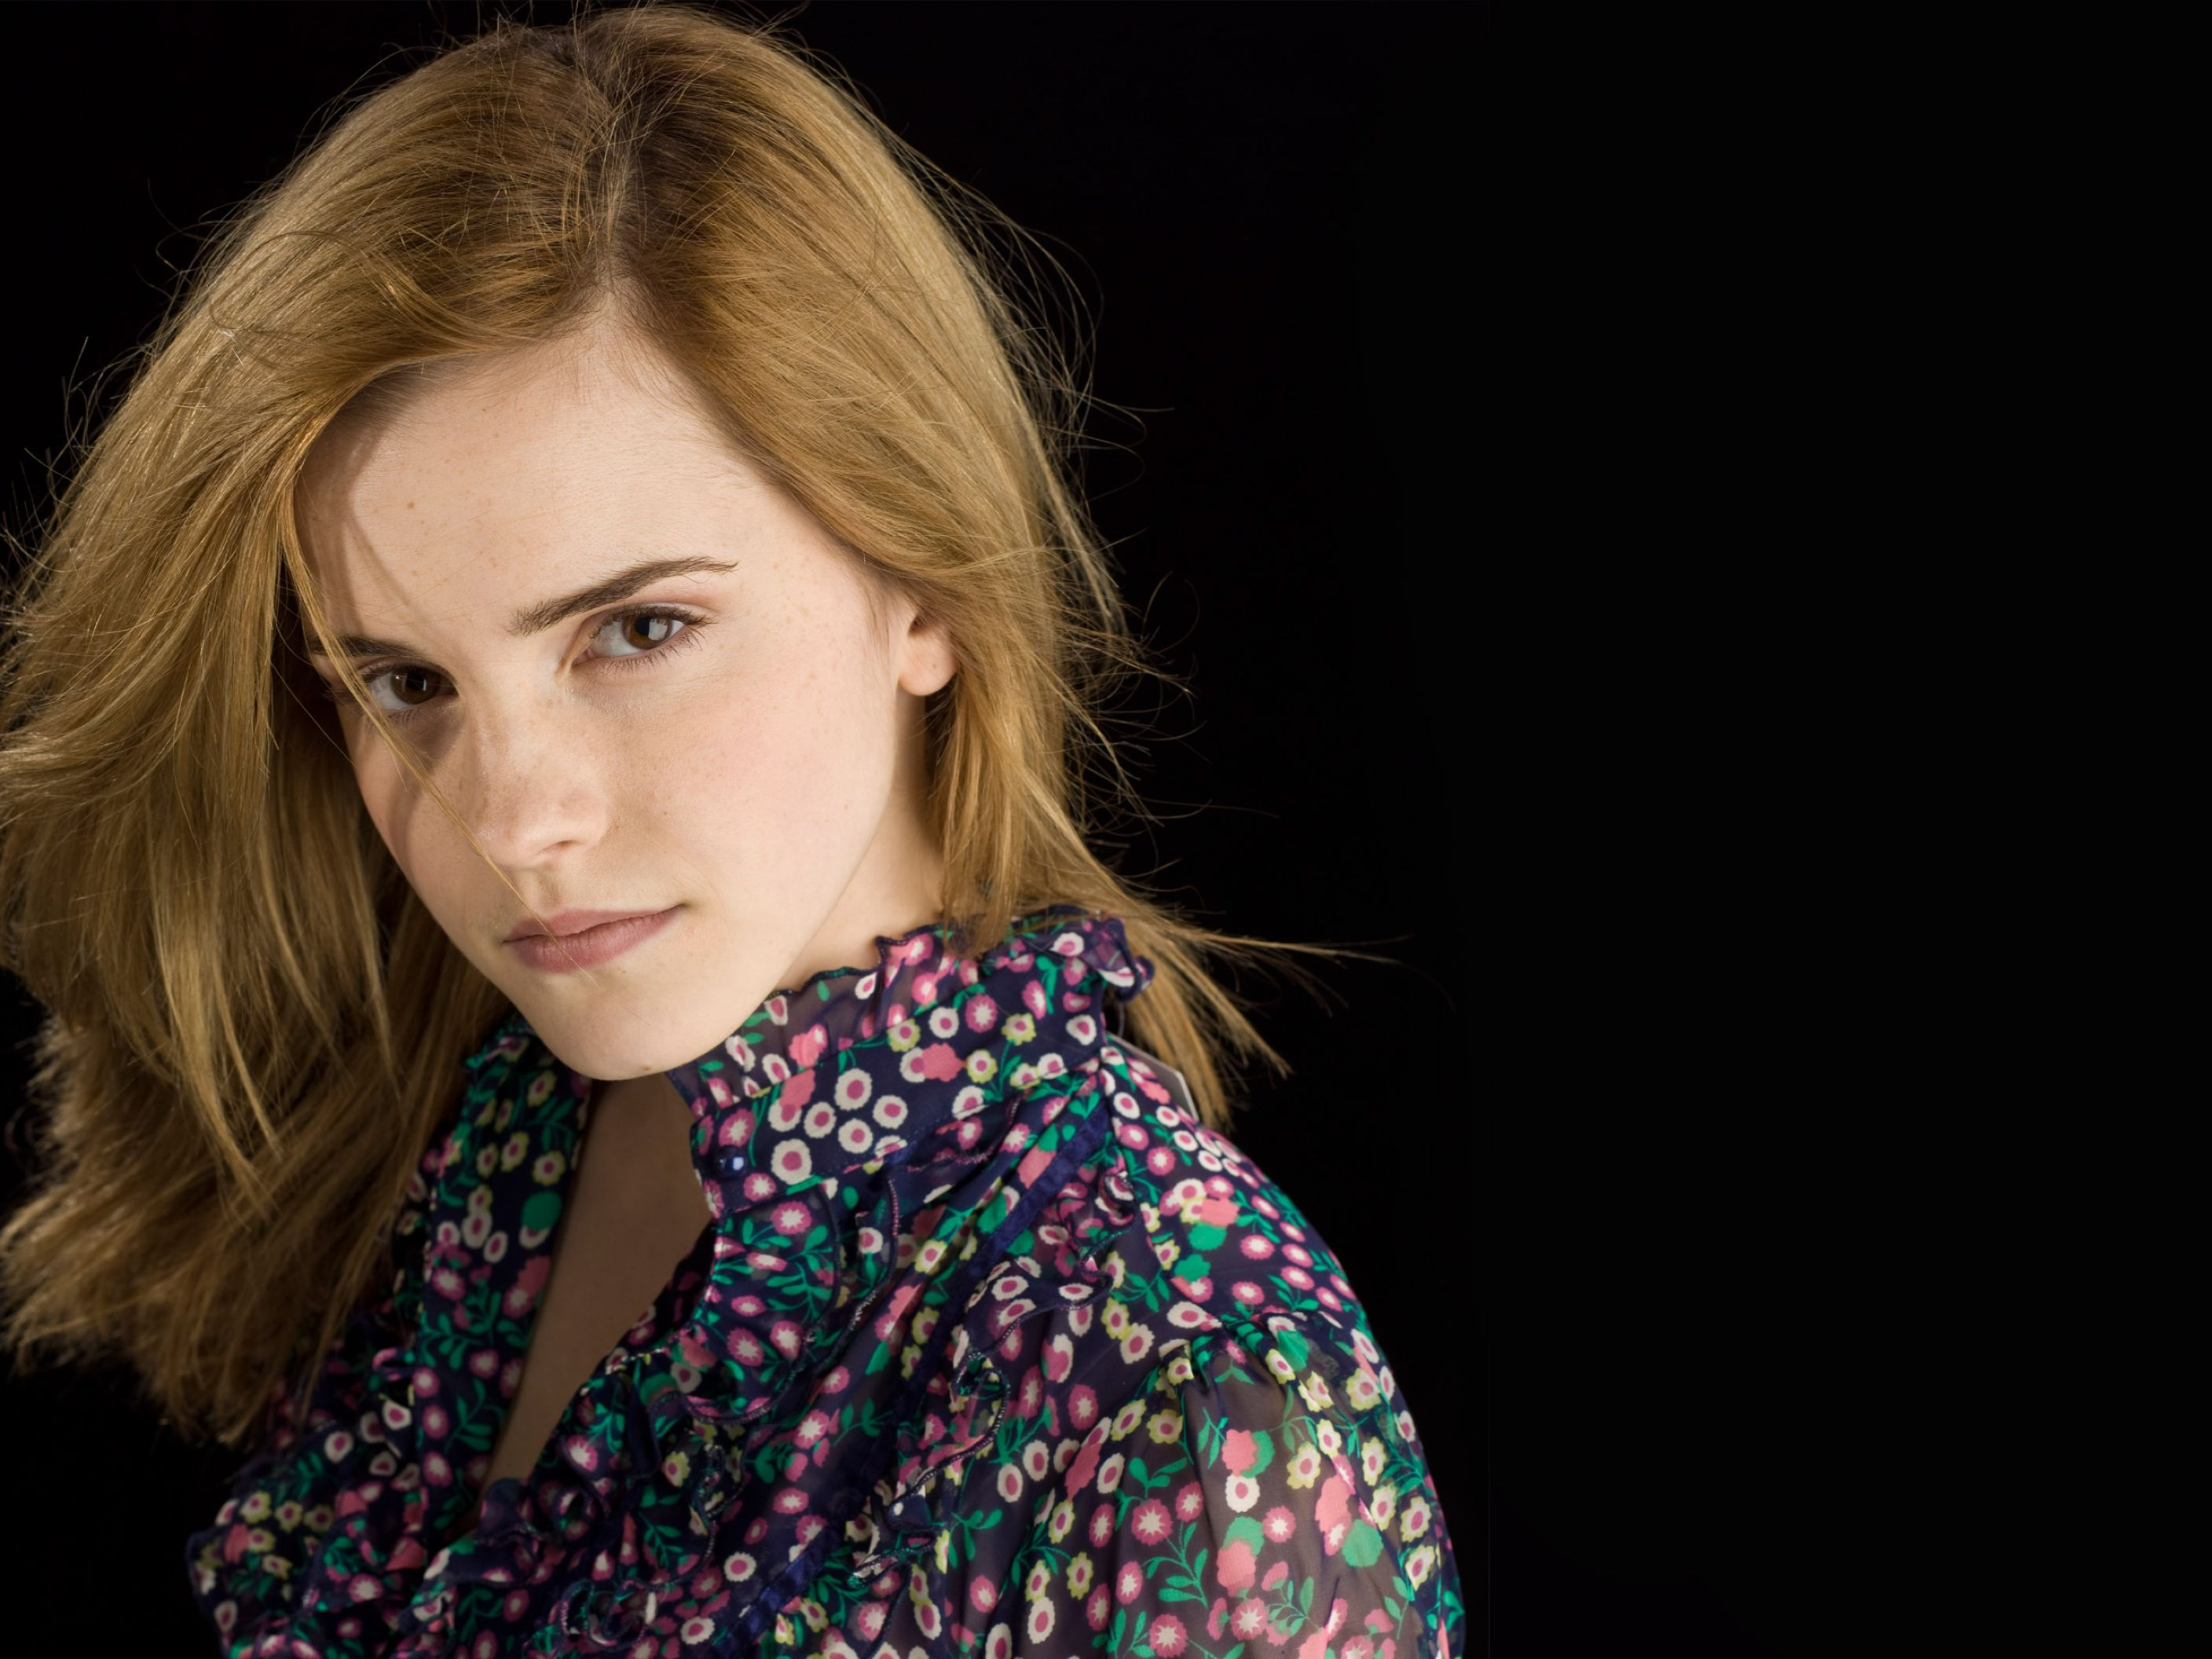 Download free HD Beautiful Emma Watson 2 Normal Wallpaper, image